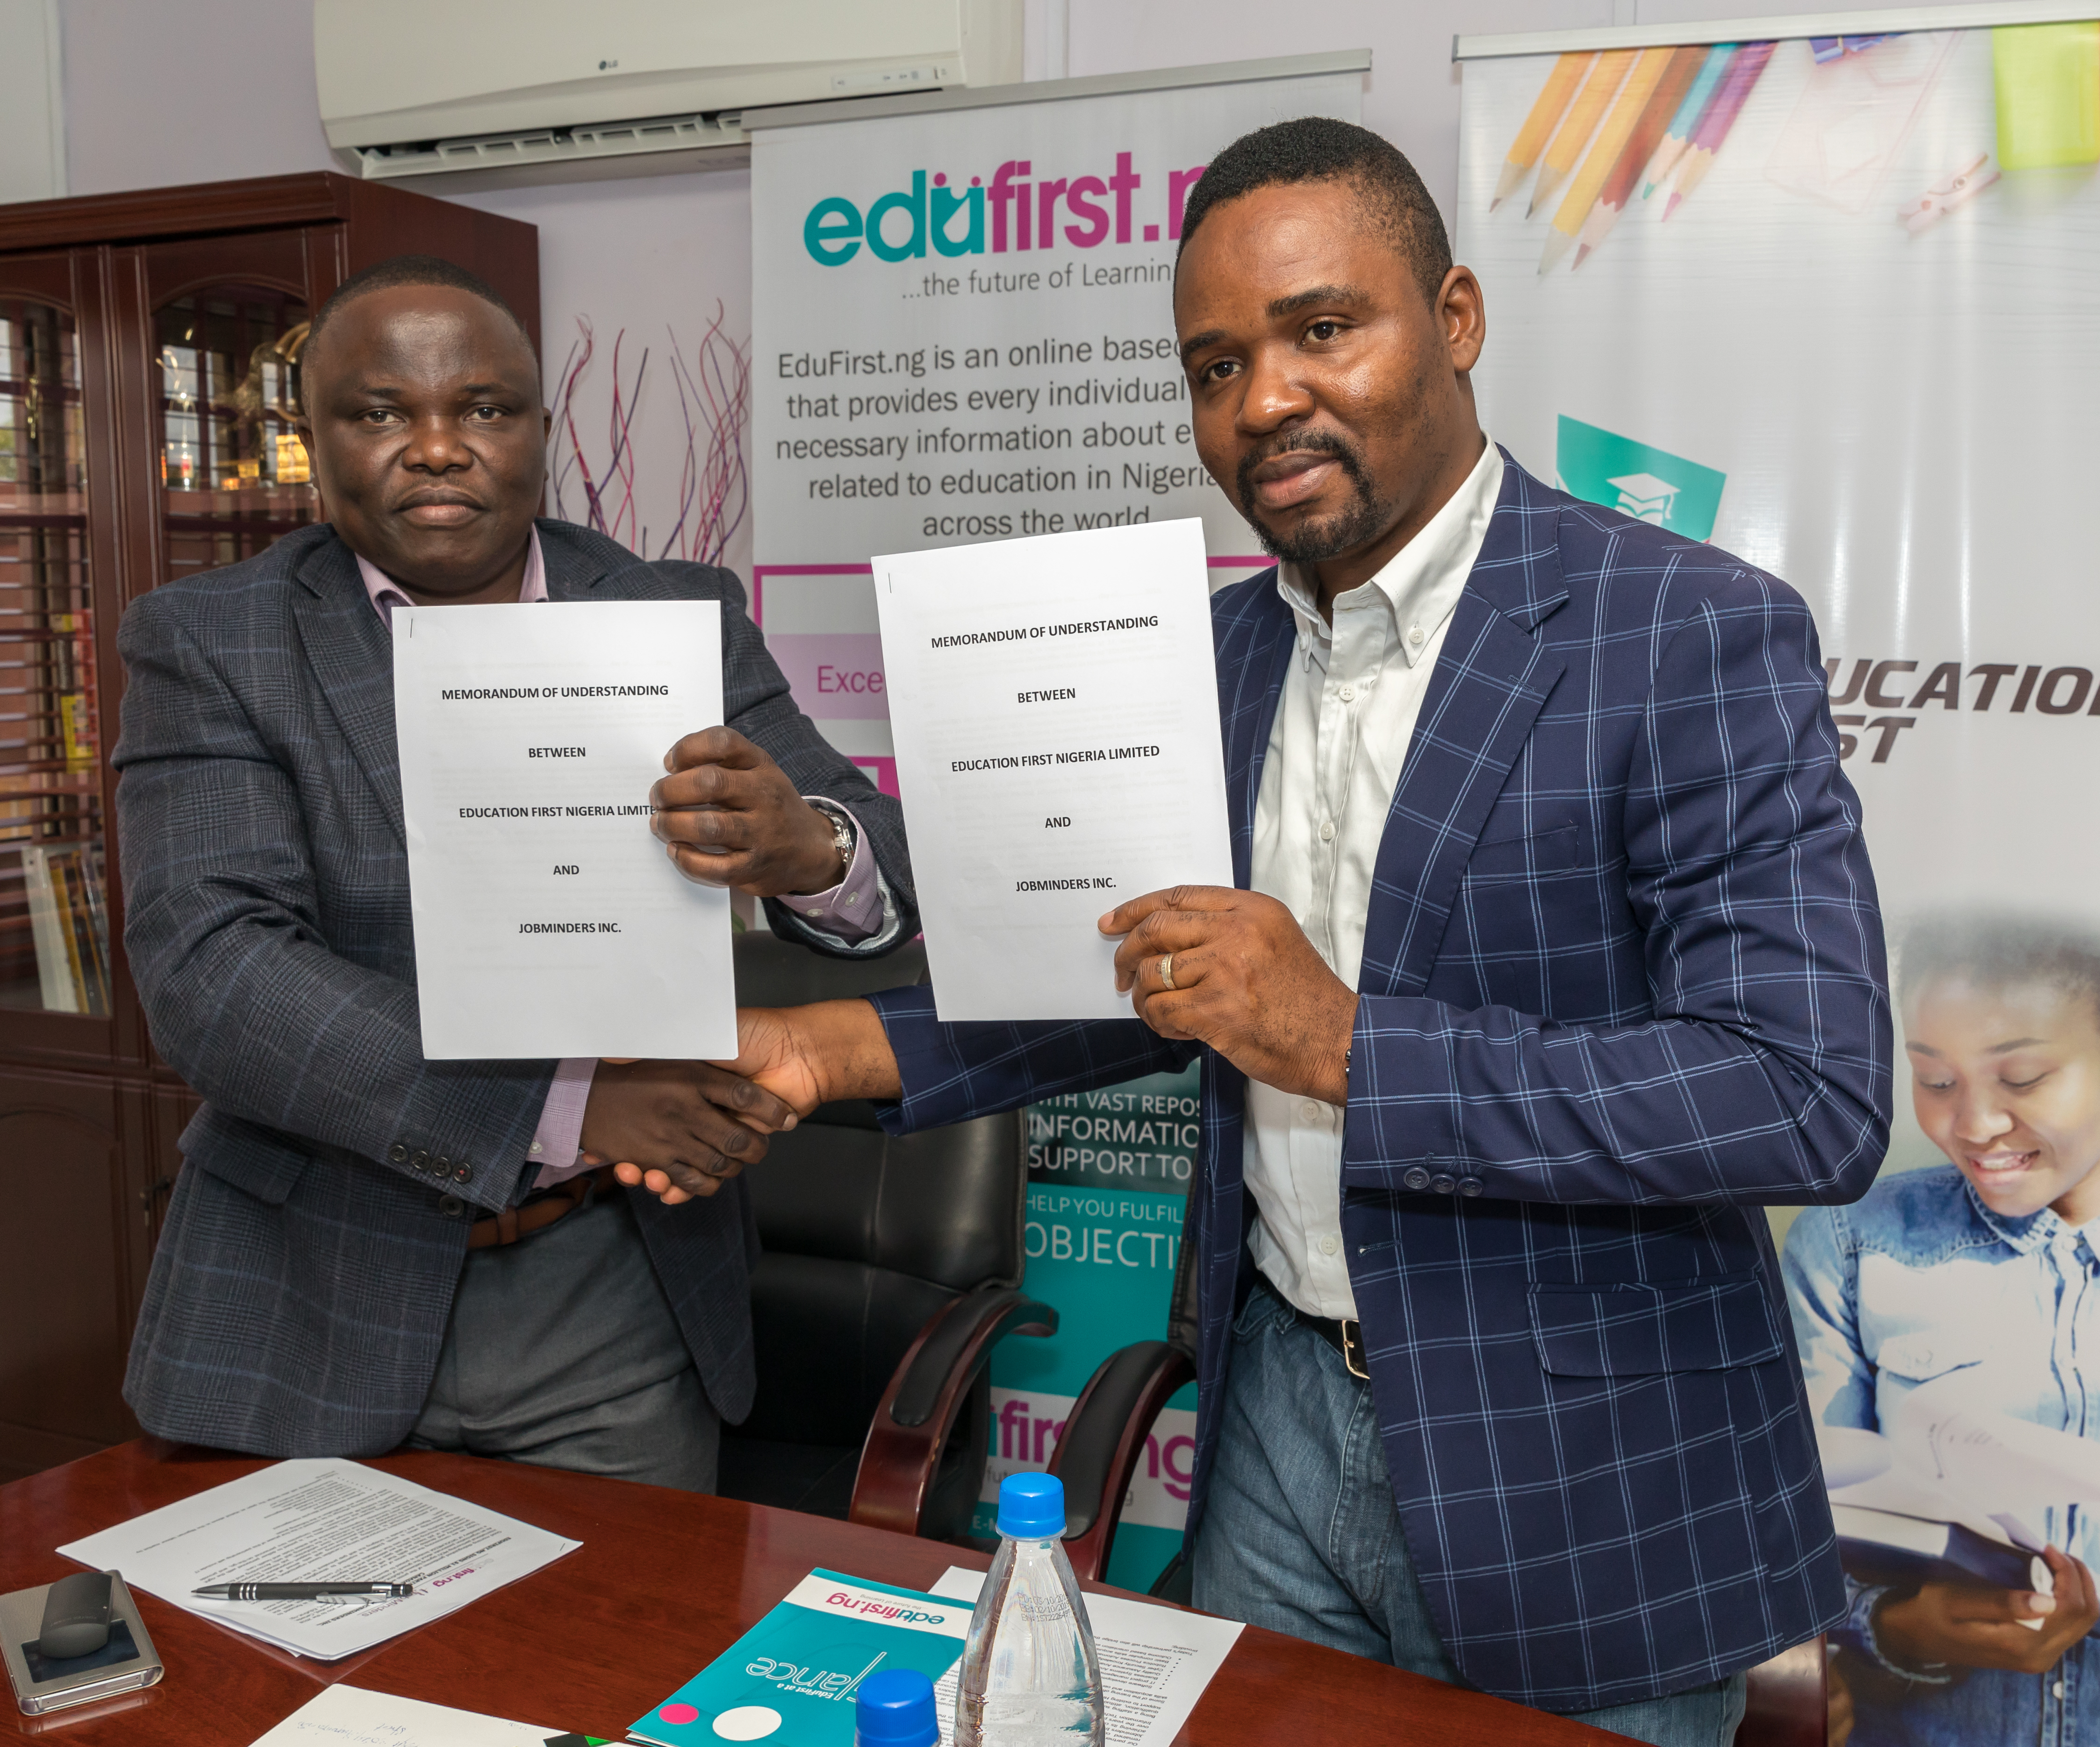 L-R: Vice-President, Job Minders Inc., Mr. Charles Osazuwa; CEO/Co-founder, Edufirst.ng, Mr. Moses Imayi signing the pact